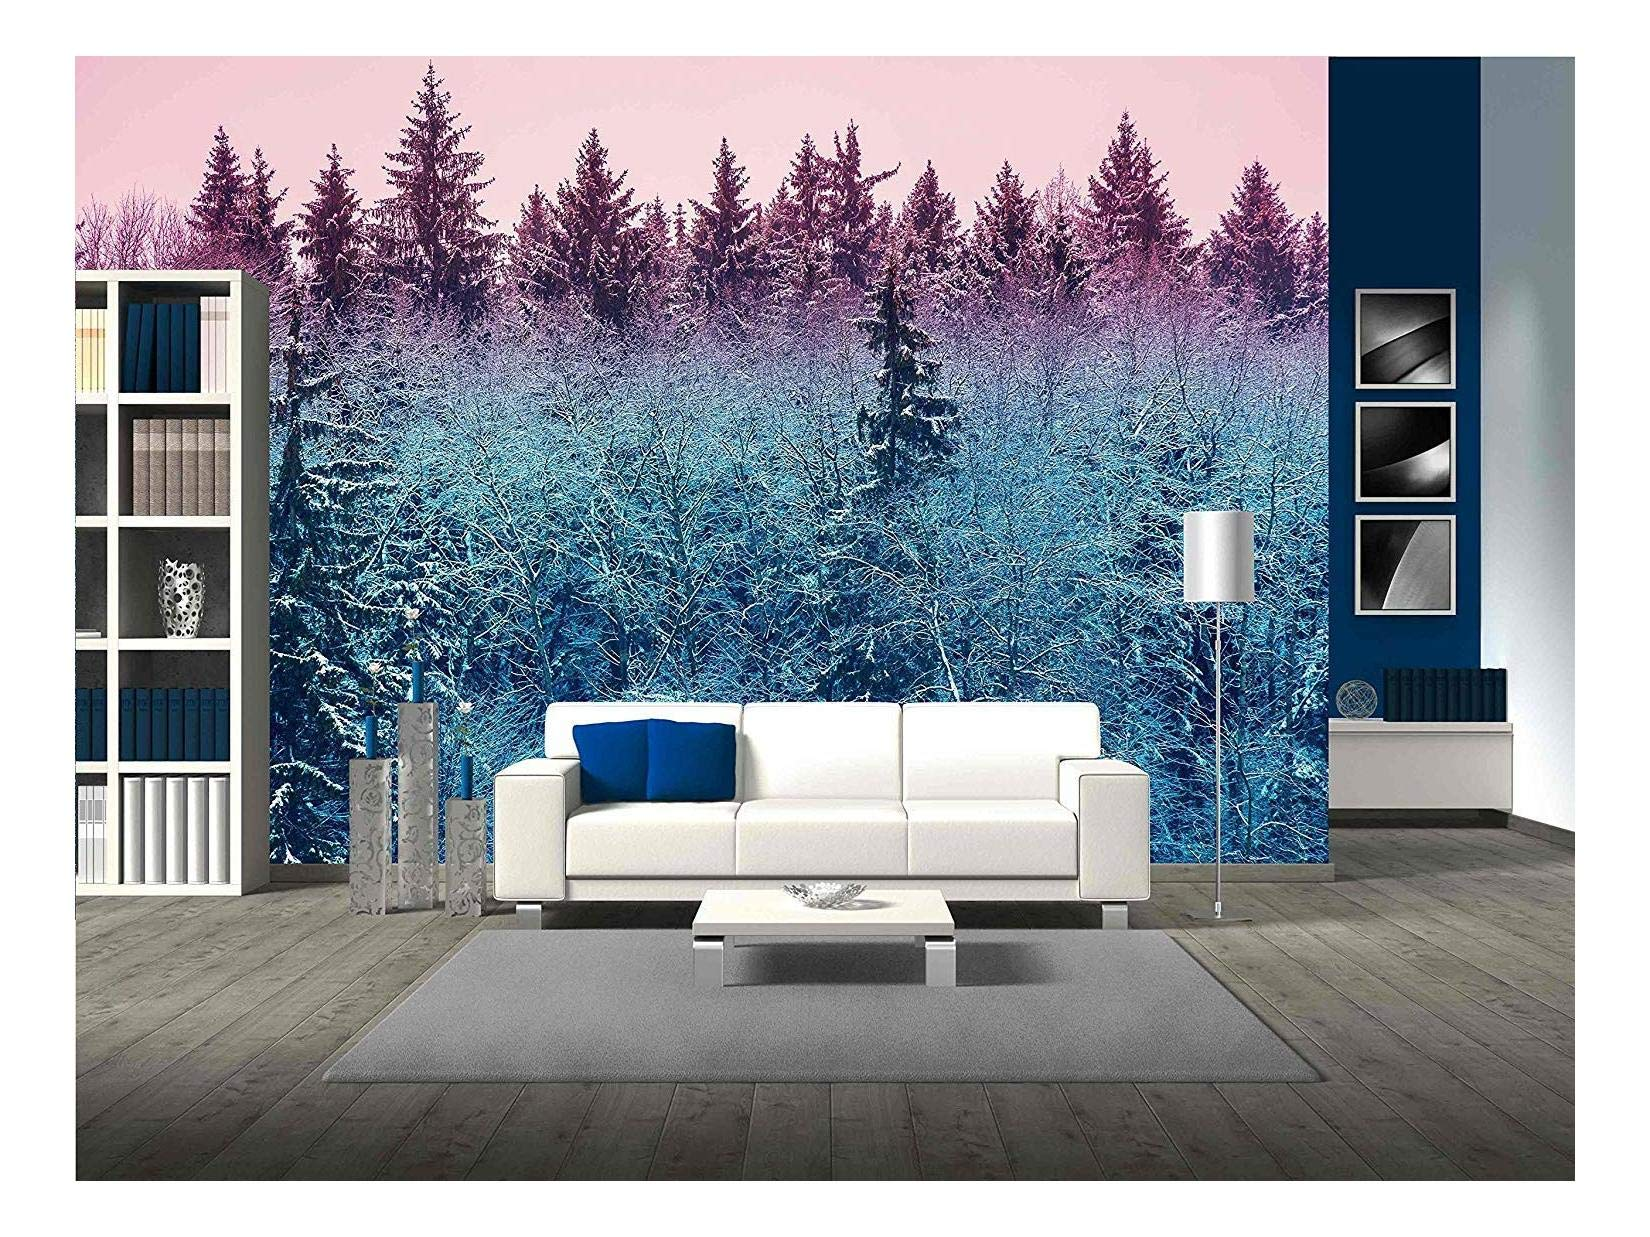 wall26 - Fir Forest in Early Morning - Removable Wall Mural | Self-Adhesive Large Wallpaper - 100x144 inches by wall26 (Image #1)